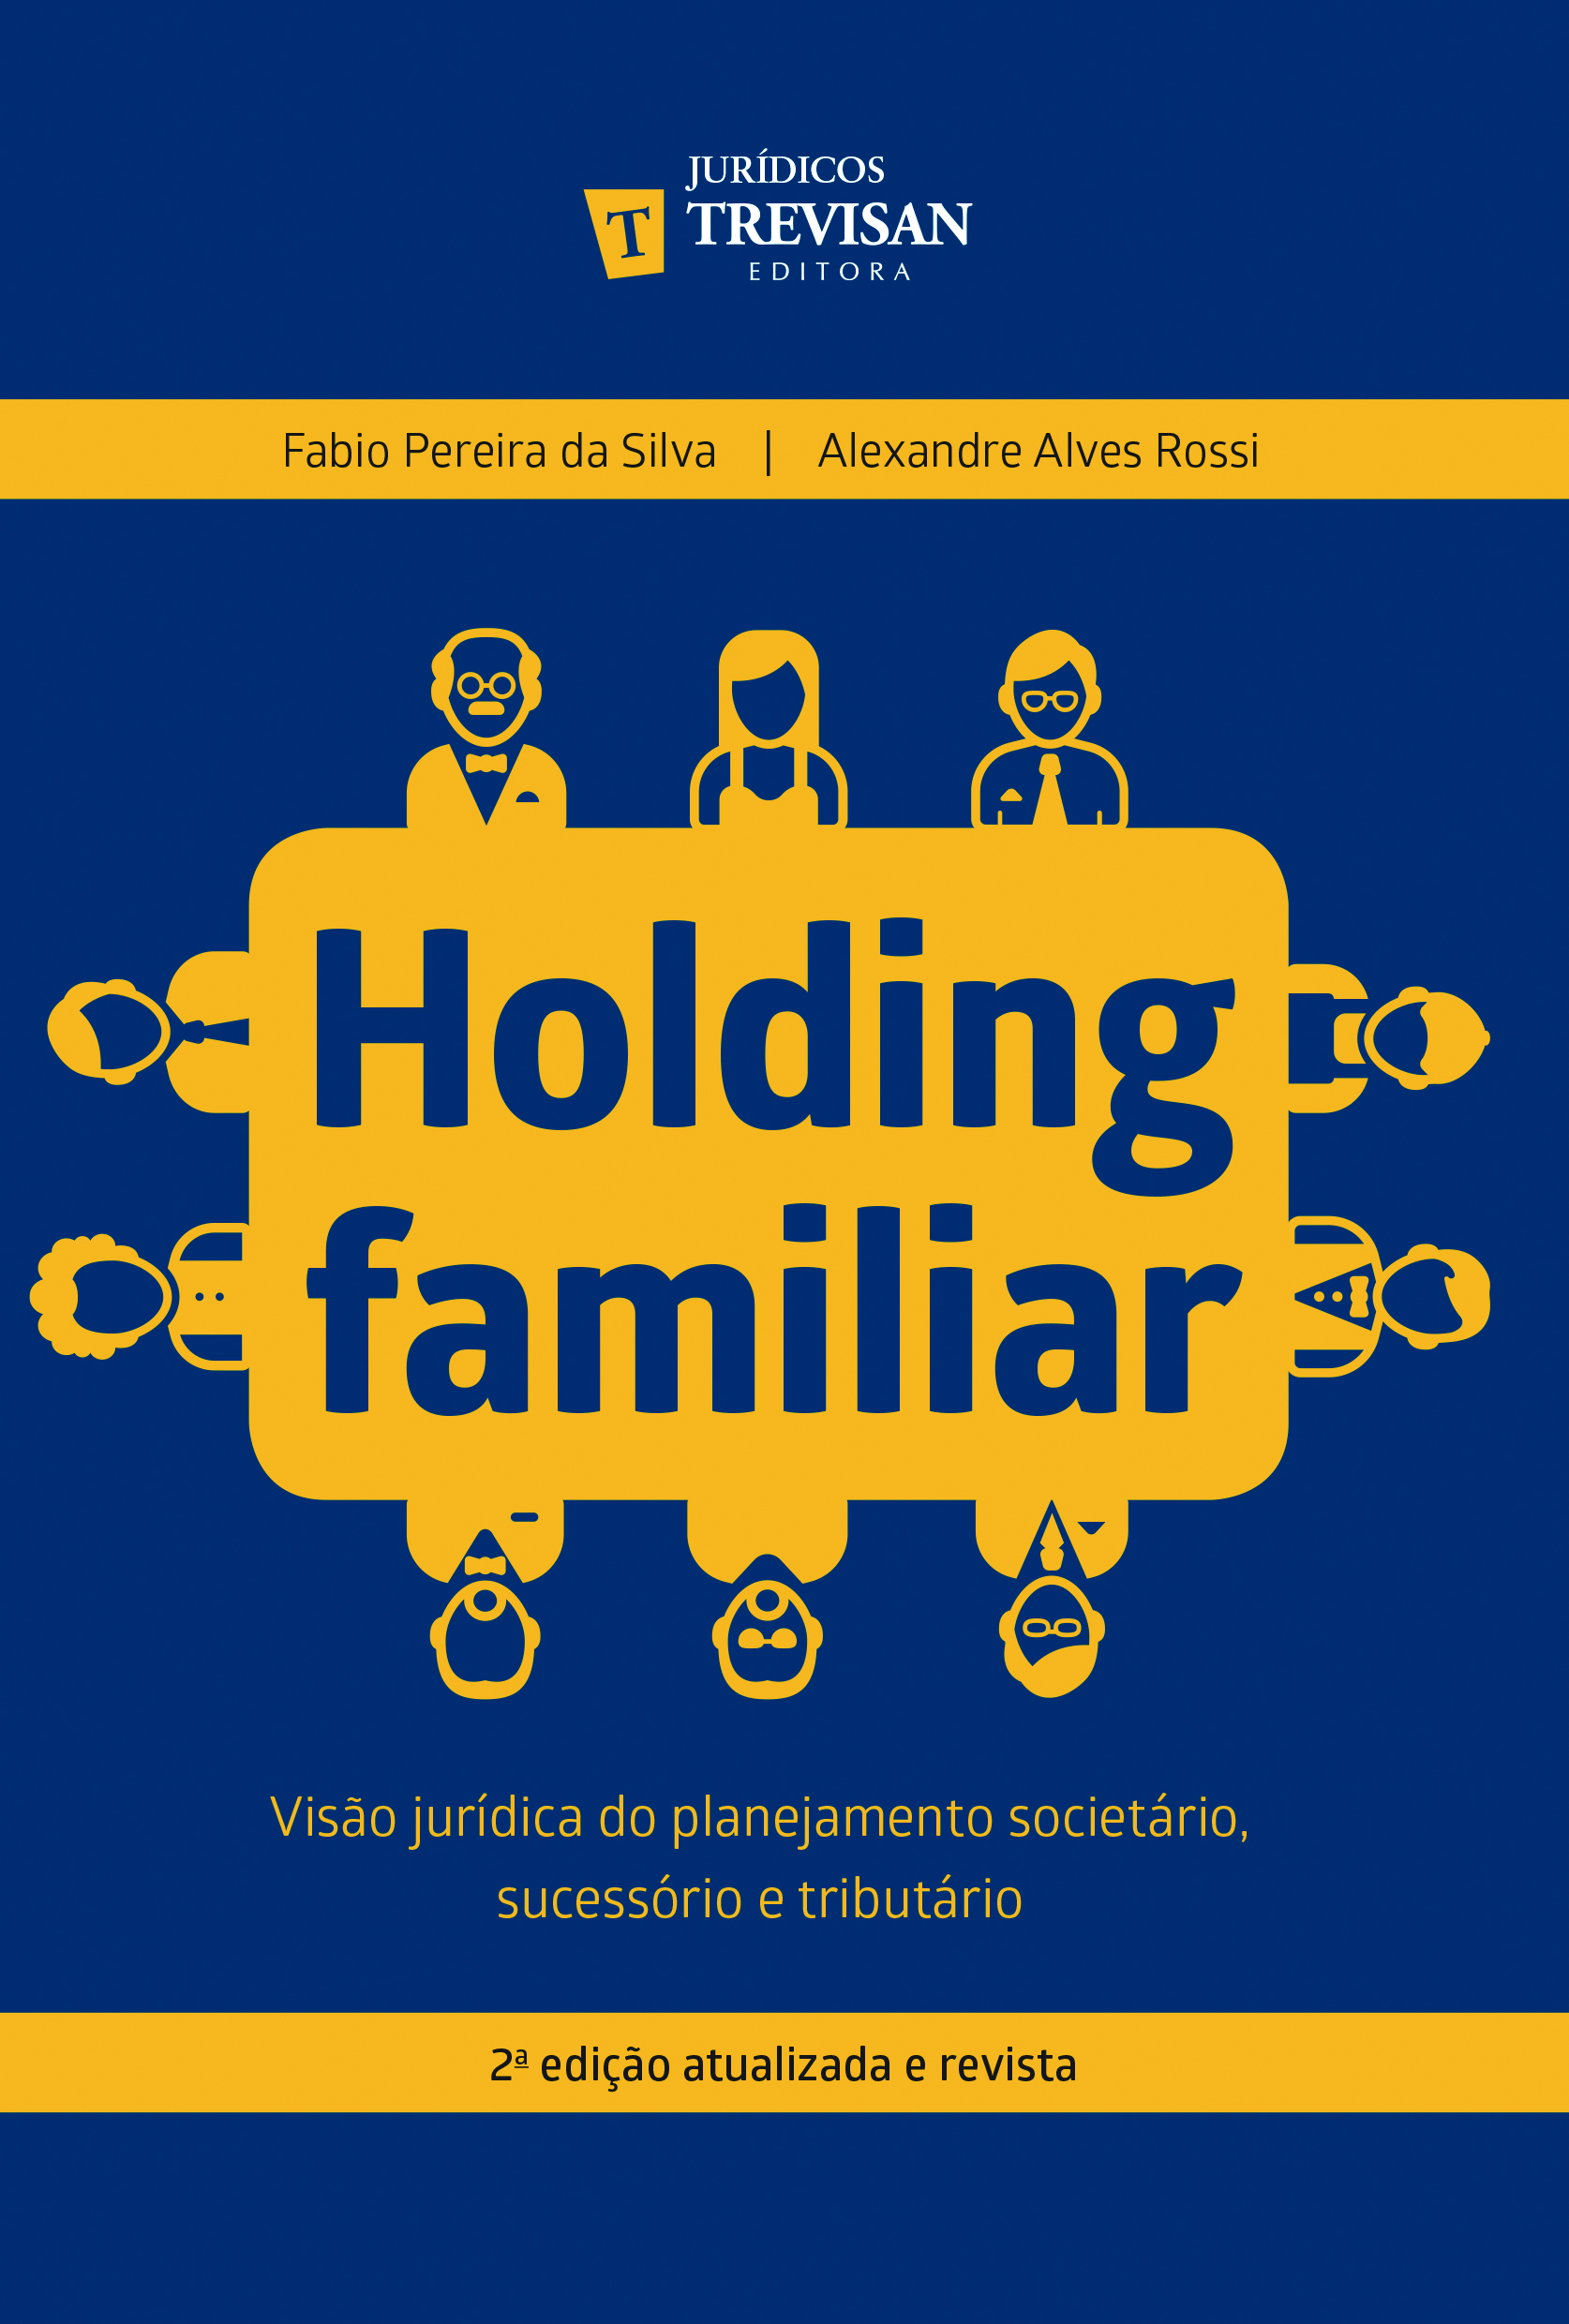 Holding familiar - 2ª edição atualiza e revista